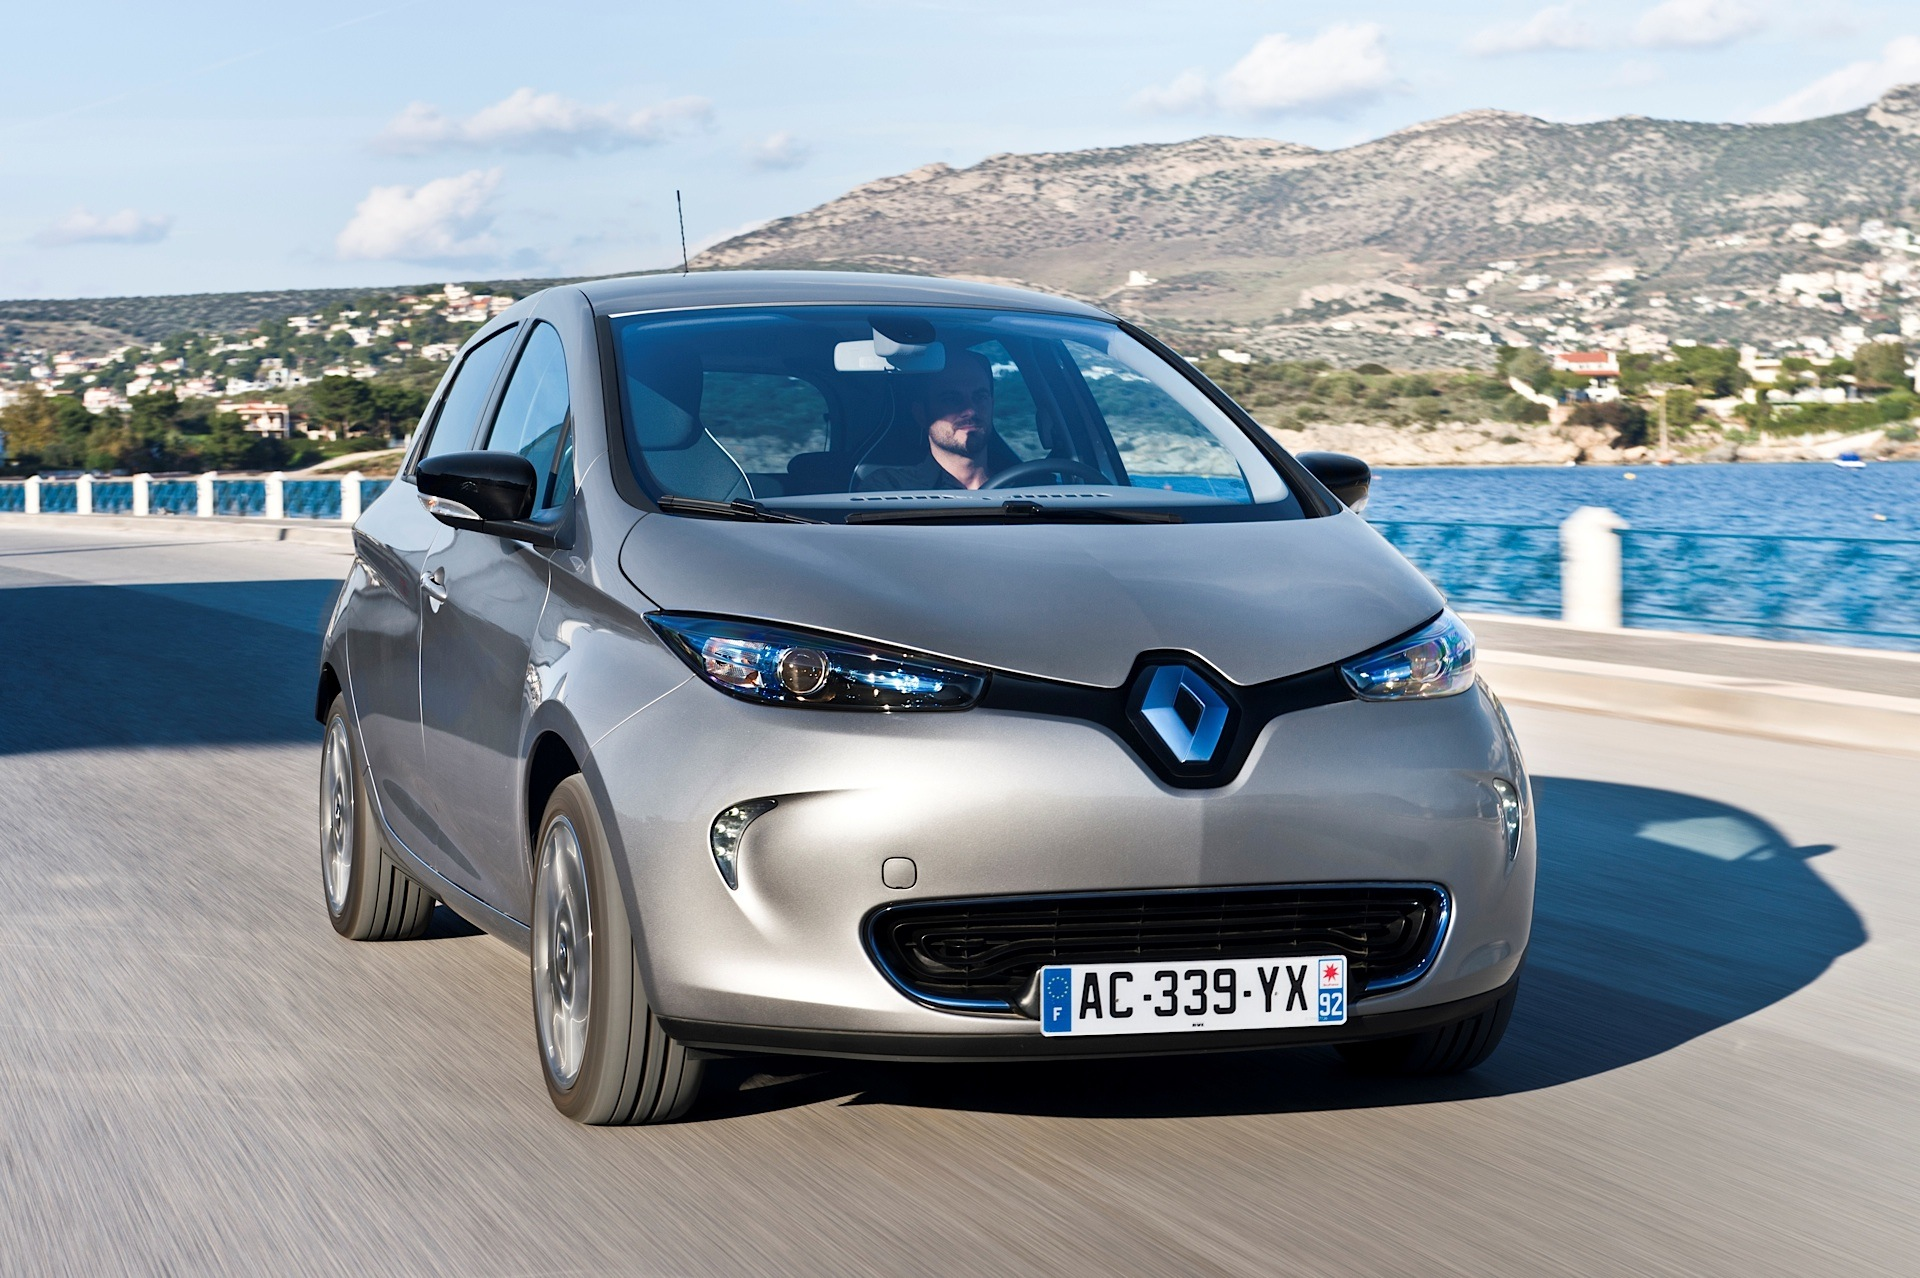 renault zoe specs 2013 2014 2015 2016 2017 2018 autoevolution. Black Bedroom Furniture Sets. Home Design Ideas